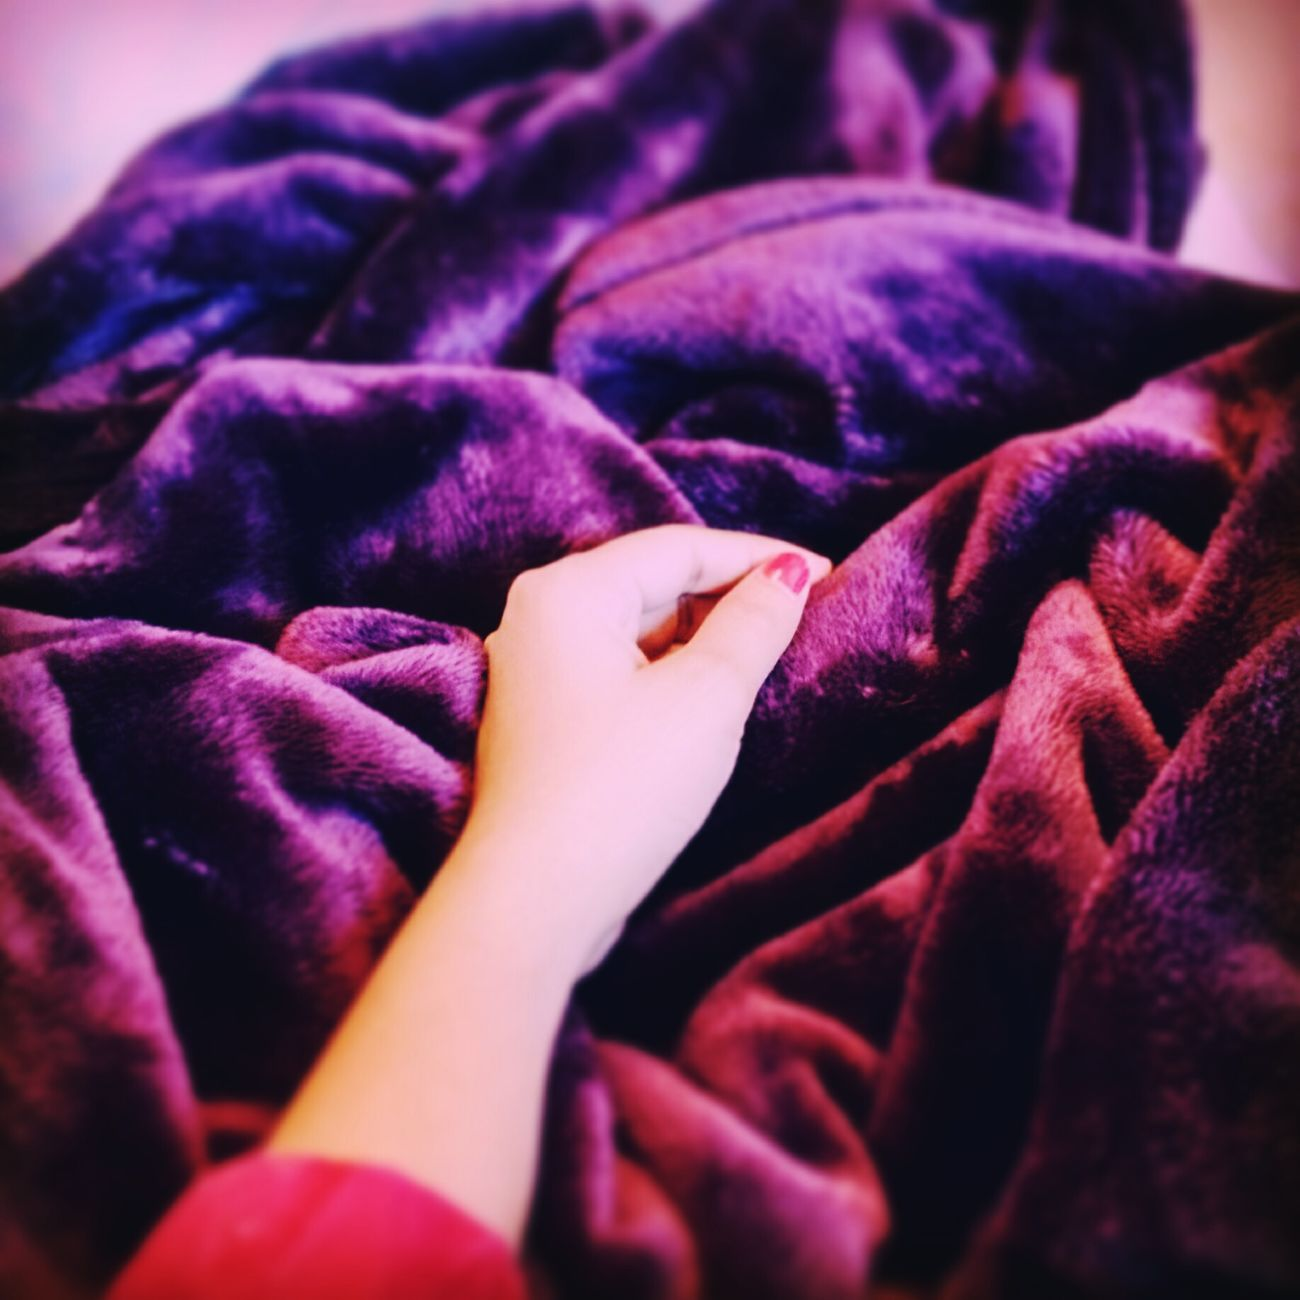 Early Morning Blues Dontwannawakeup Frommybed Coldmornings Cosy Home Cosytime Morning Light Butiwannastayinbed Sleepyhead Feelsnice